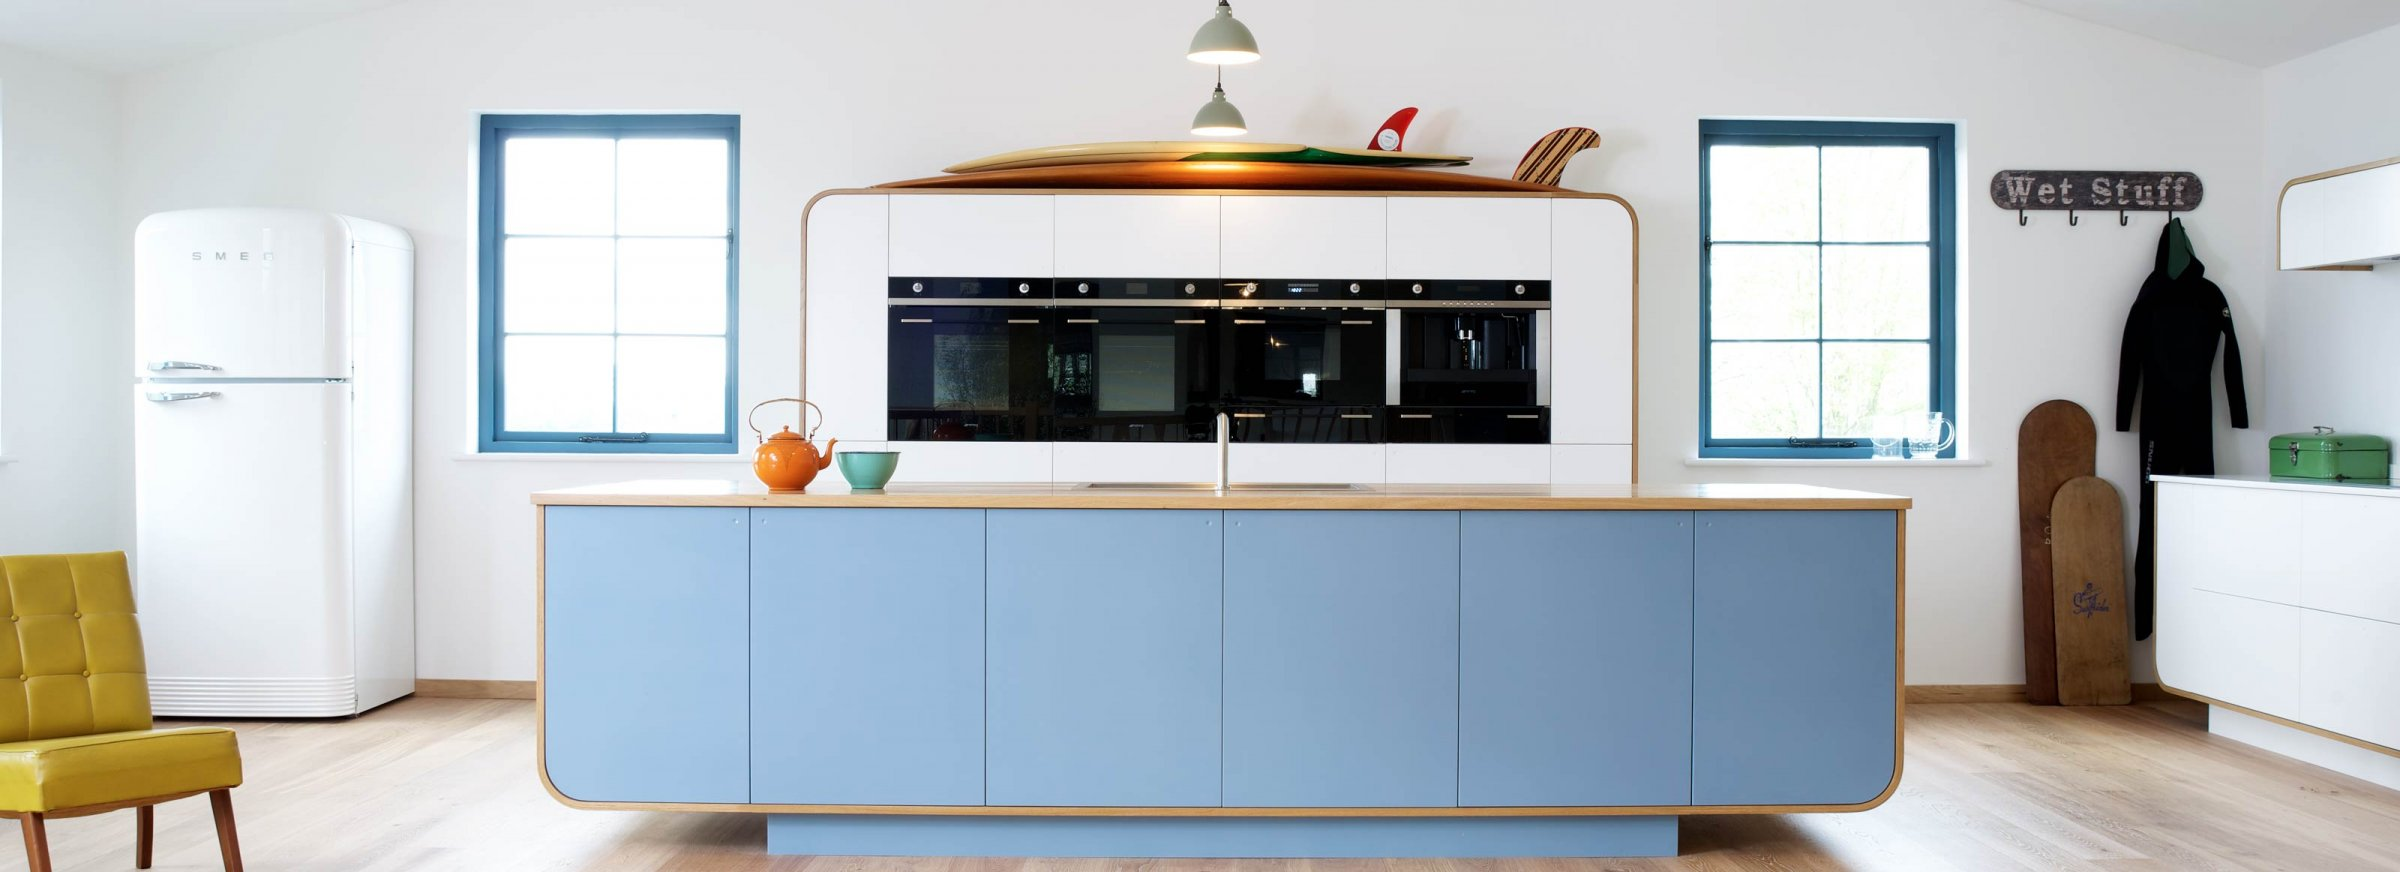 devol-air-kitchen_2